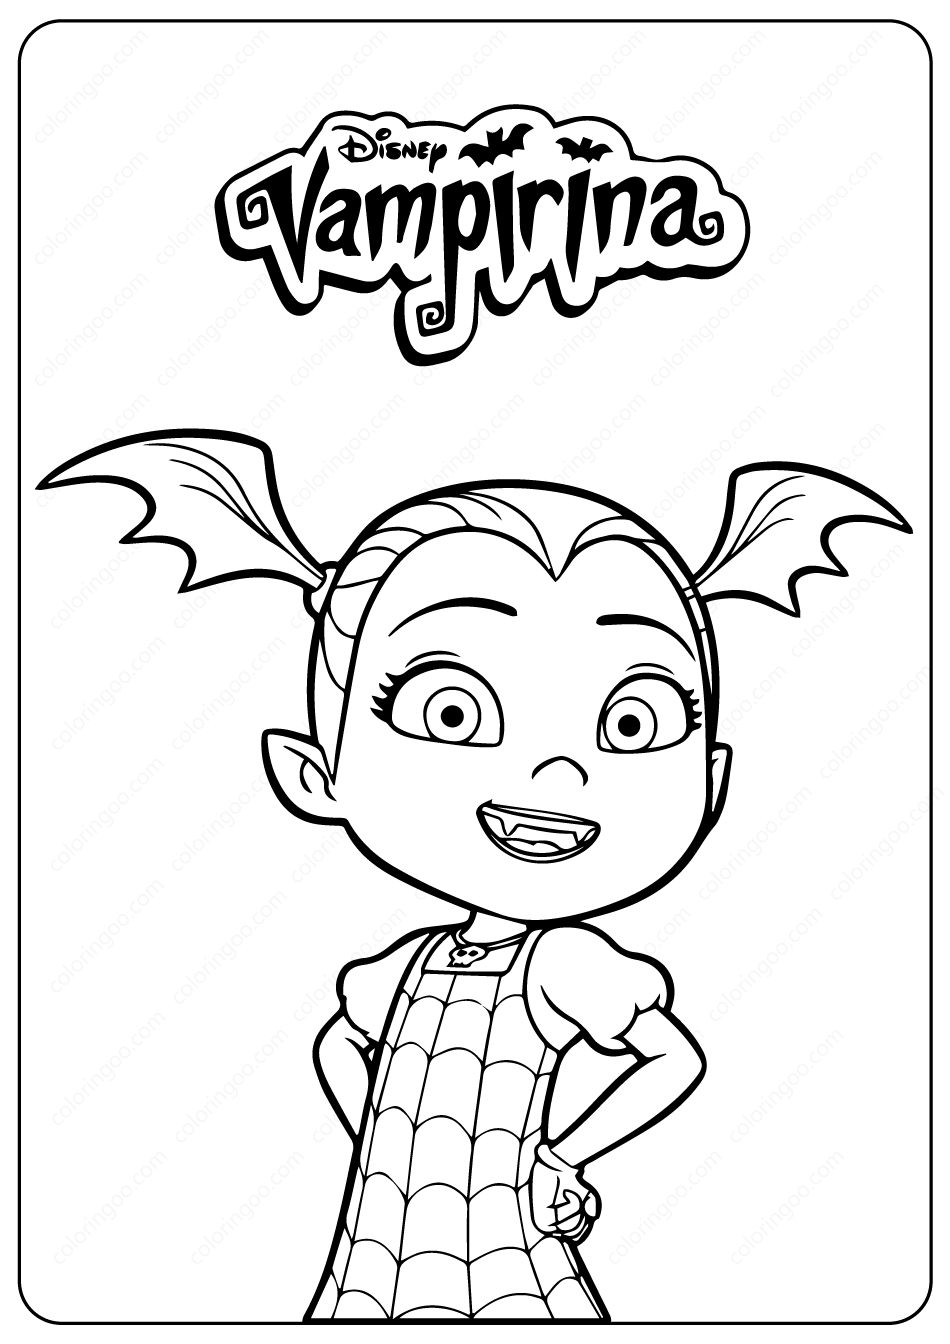 Vampirina PDF Coloring Pages in 2020 Coloring pages